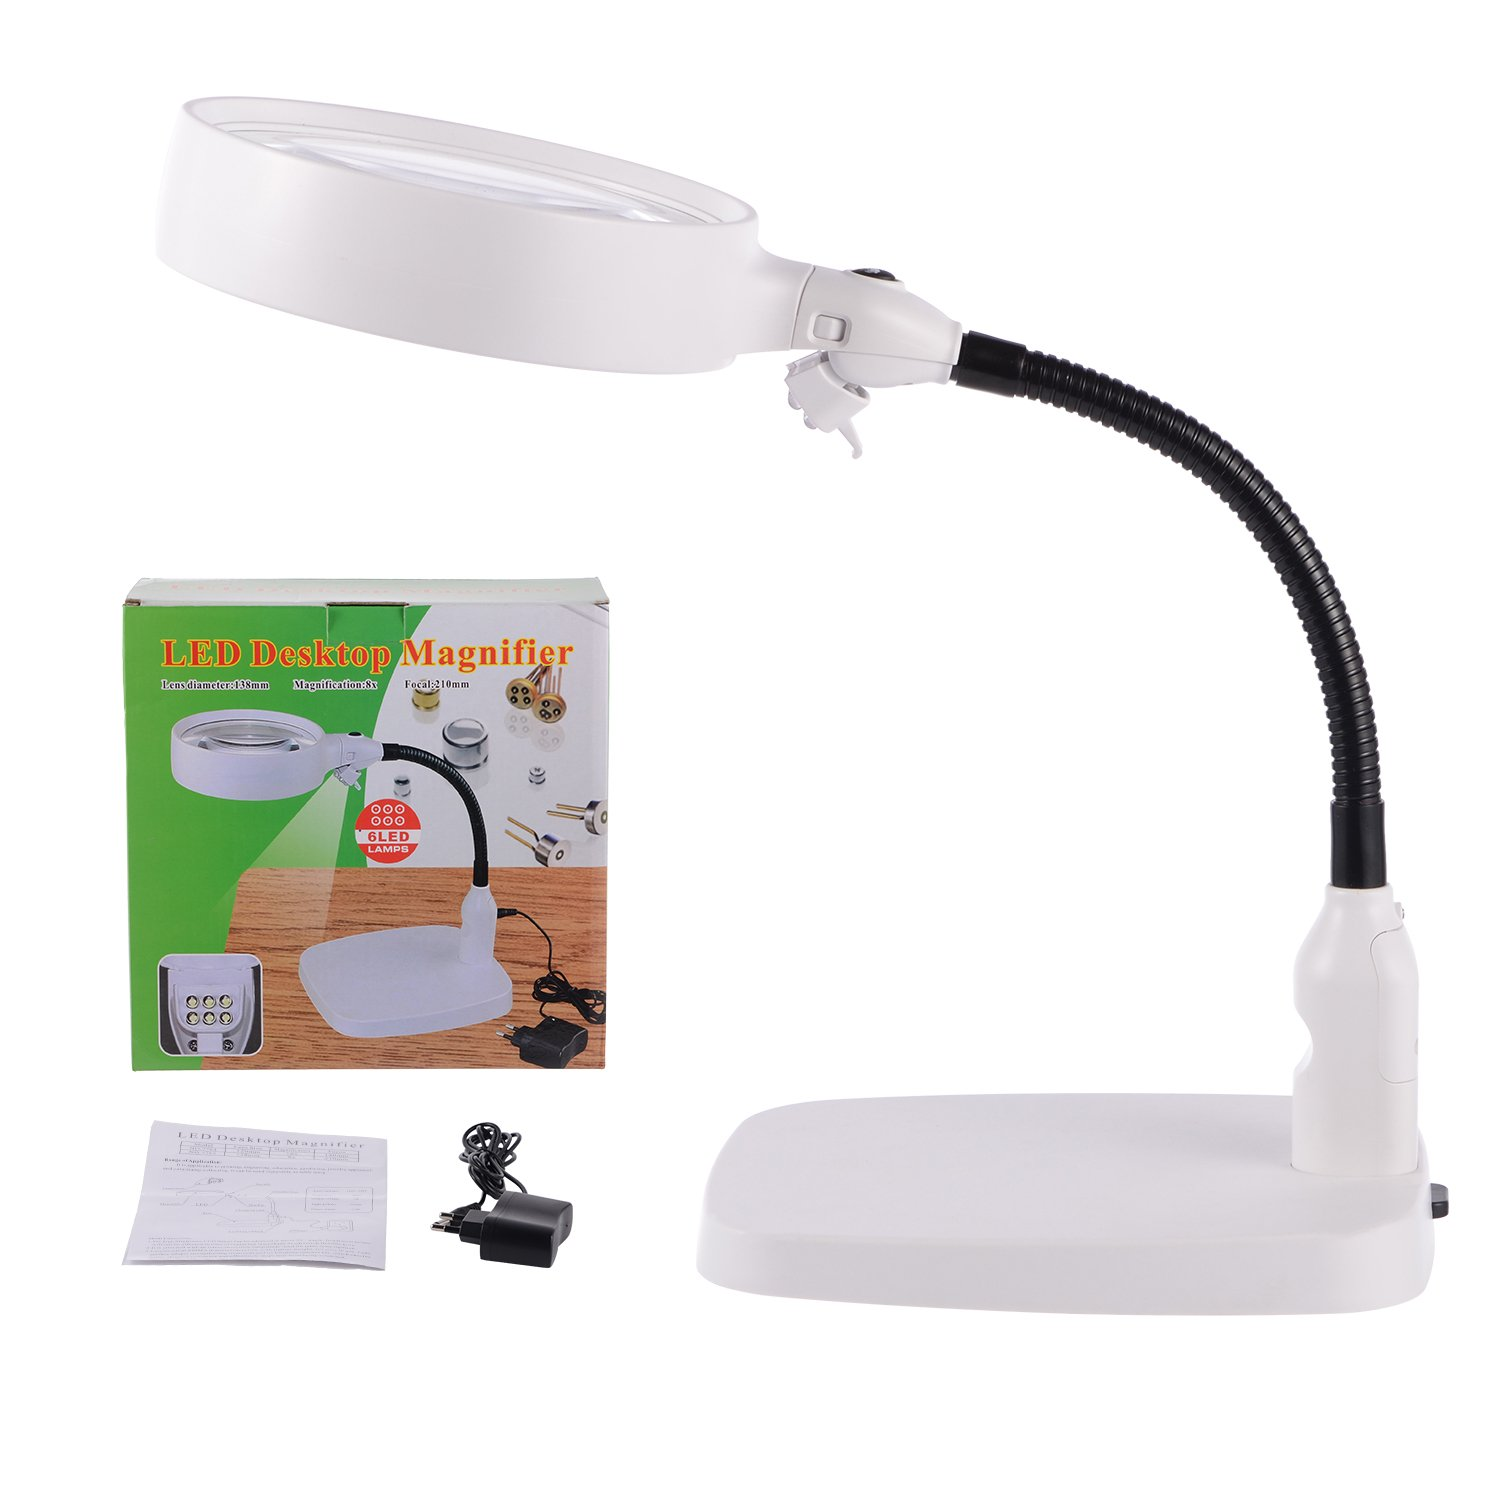 XYK Large LED Lighted Magnifier with Stand - Folding Design with 6 LED Lamp - Best 8X Hands Free Magnifying Glass with Light for Reading